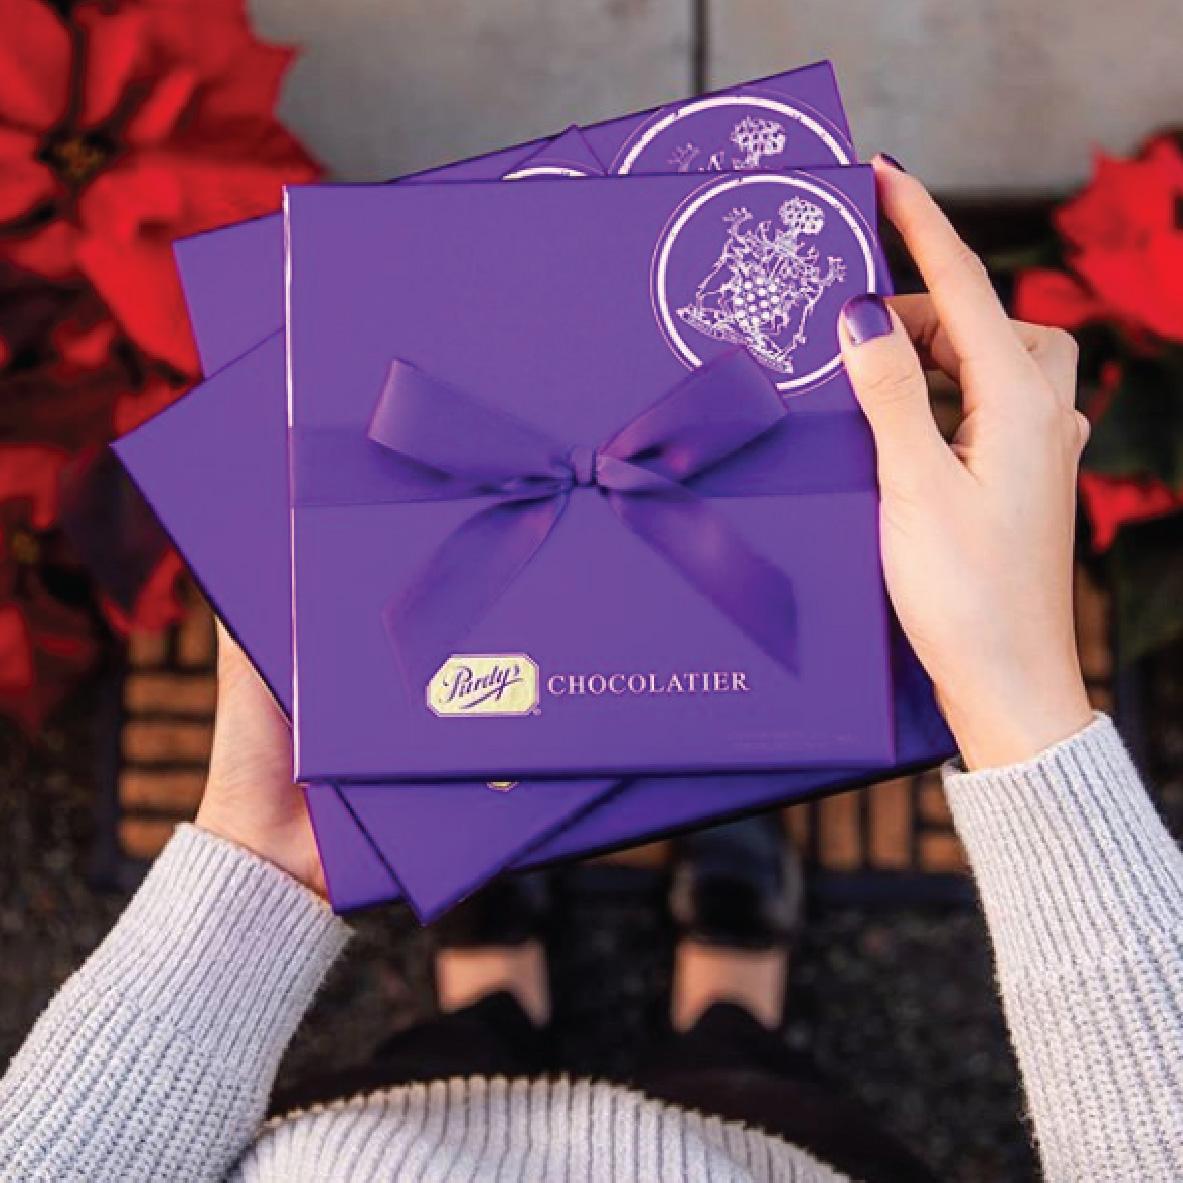 Purdys Signature Box Package Design